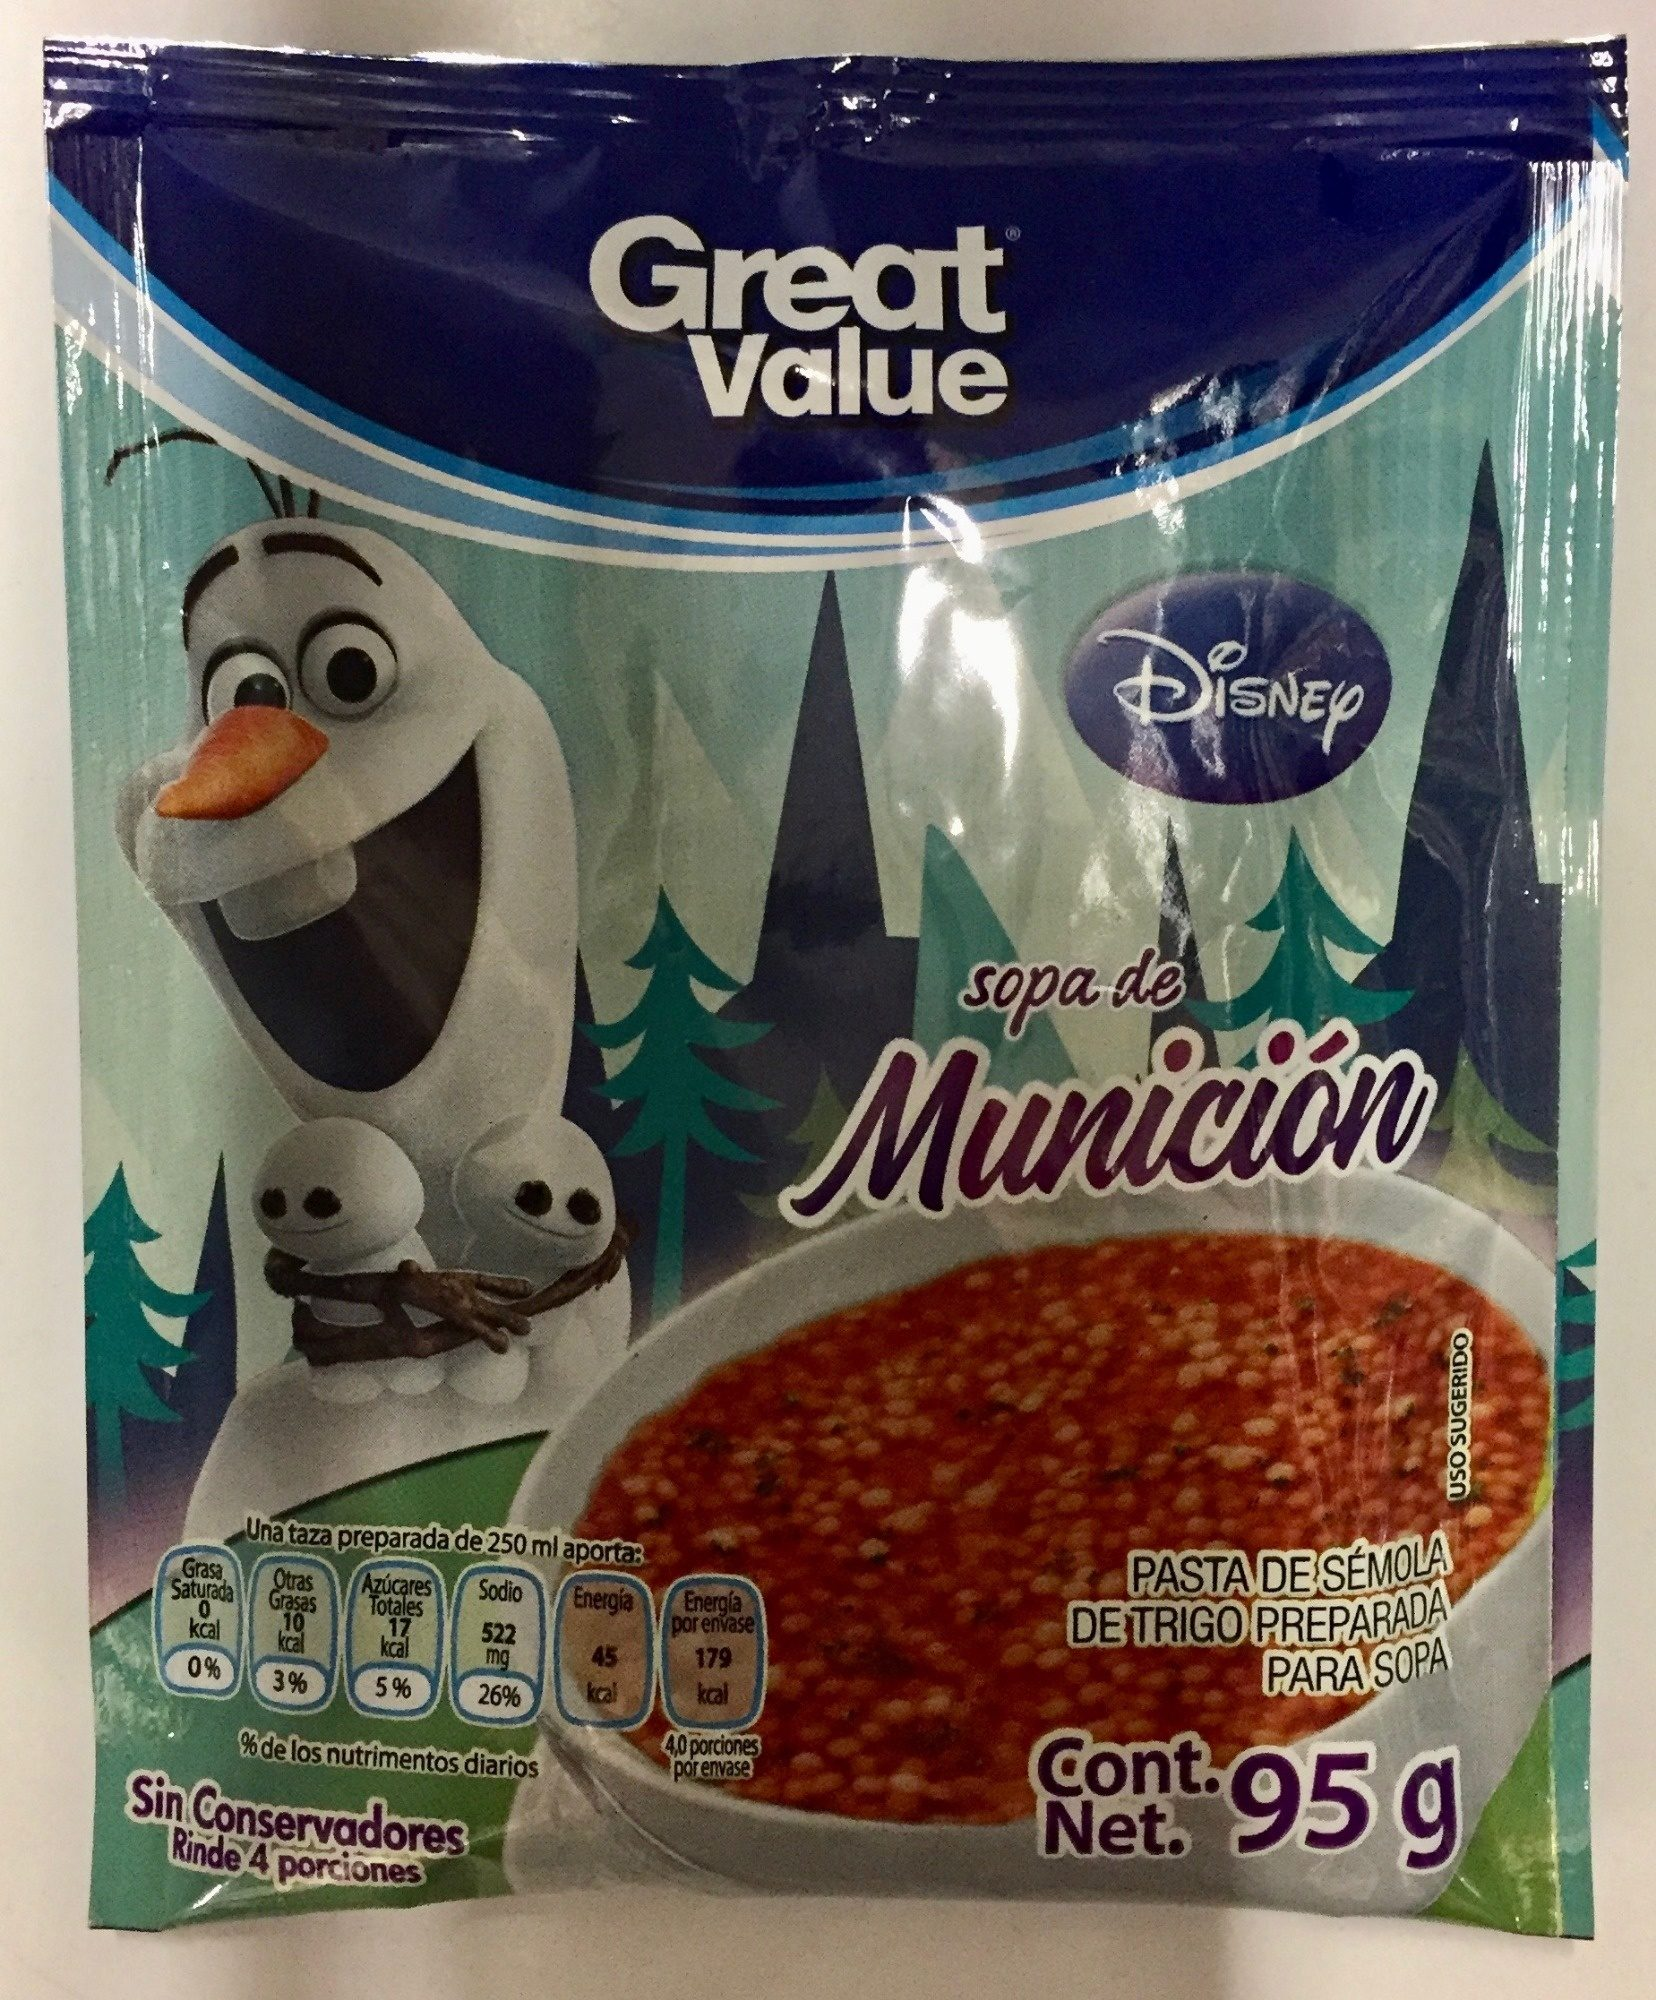 Sopa de munición disney - Product - es